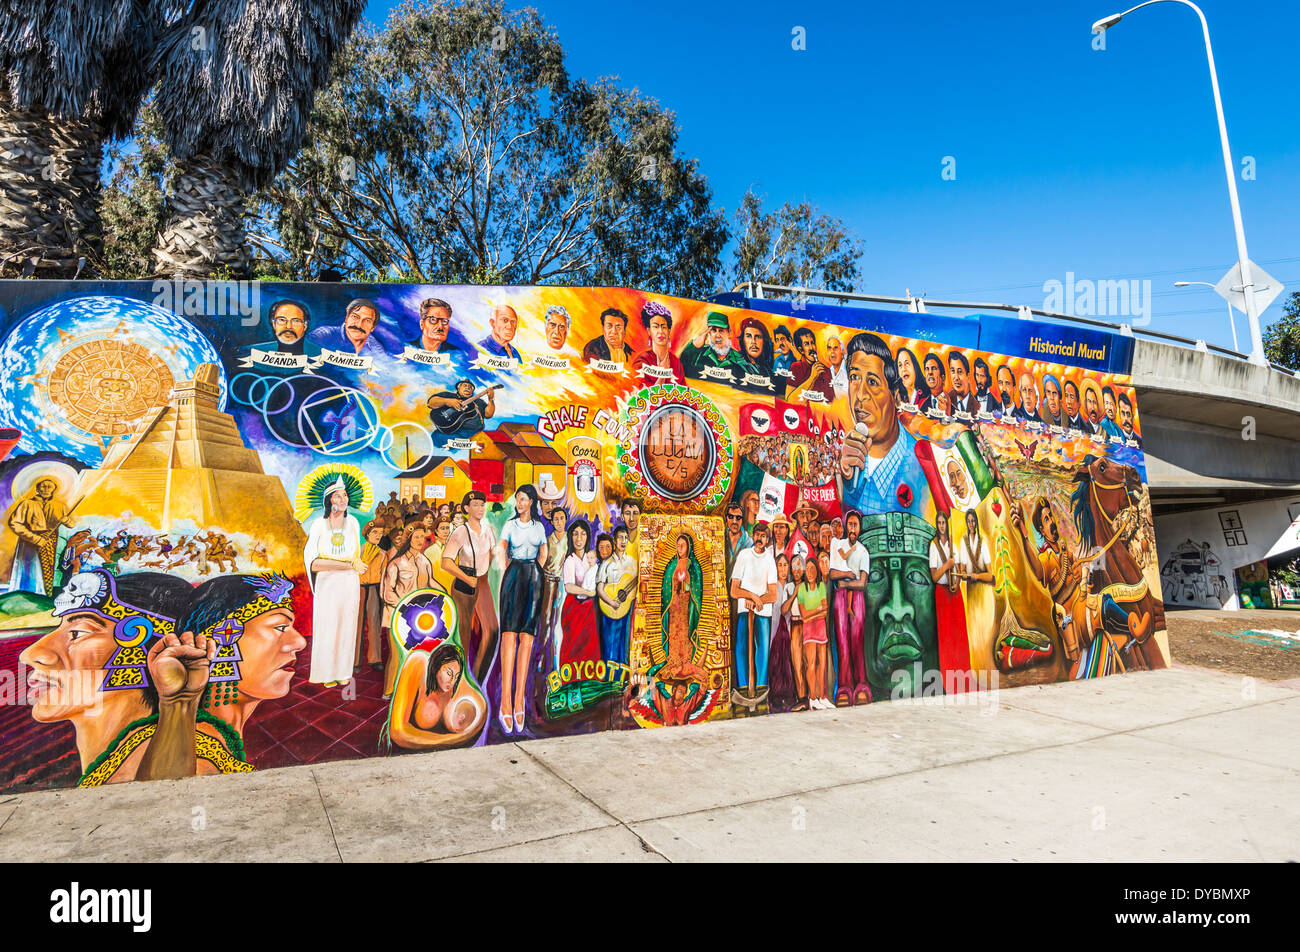 Arte Chicano Murals Chicano Mural Stock Photos Chicano Mural Stock Images Alamy